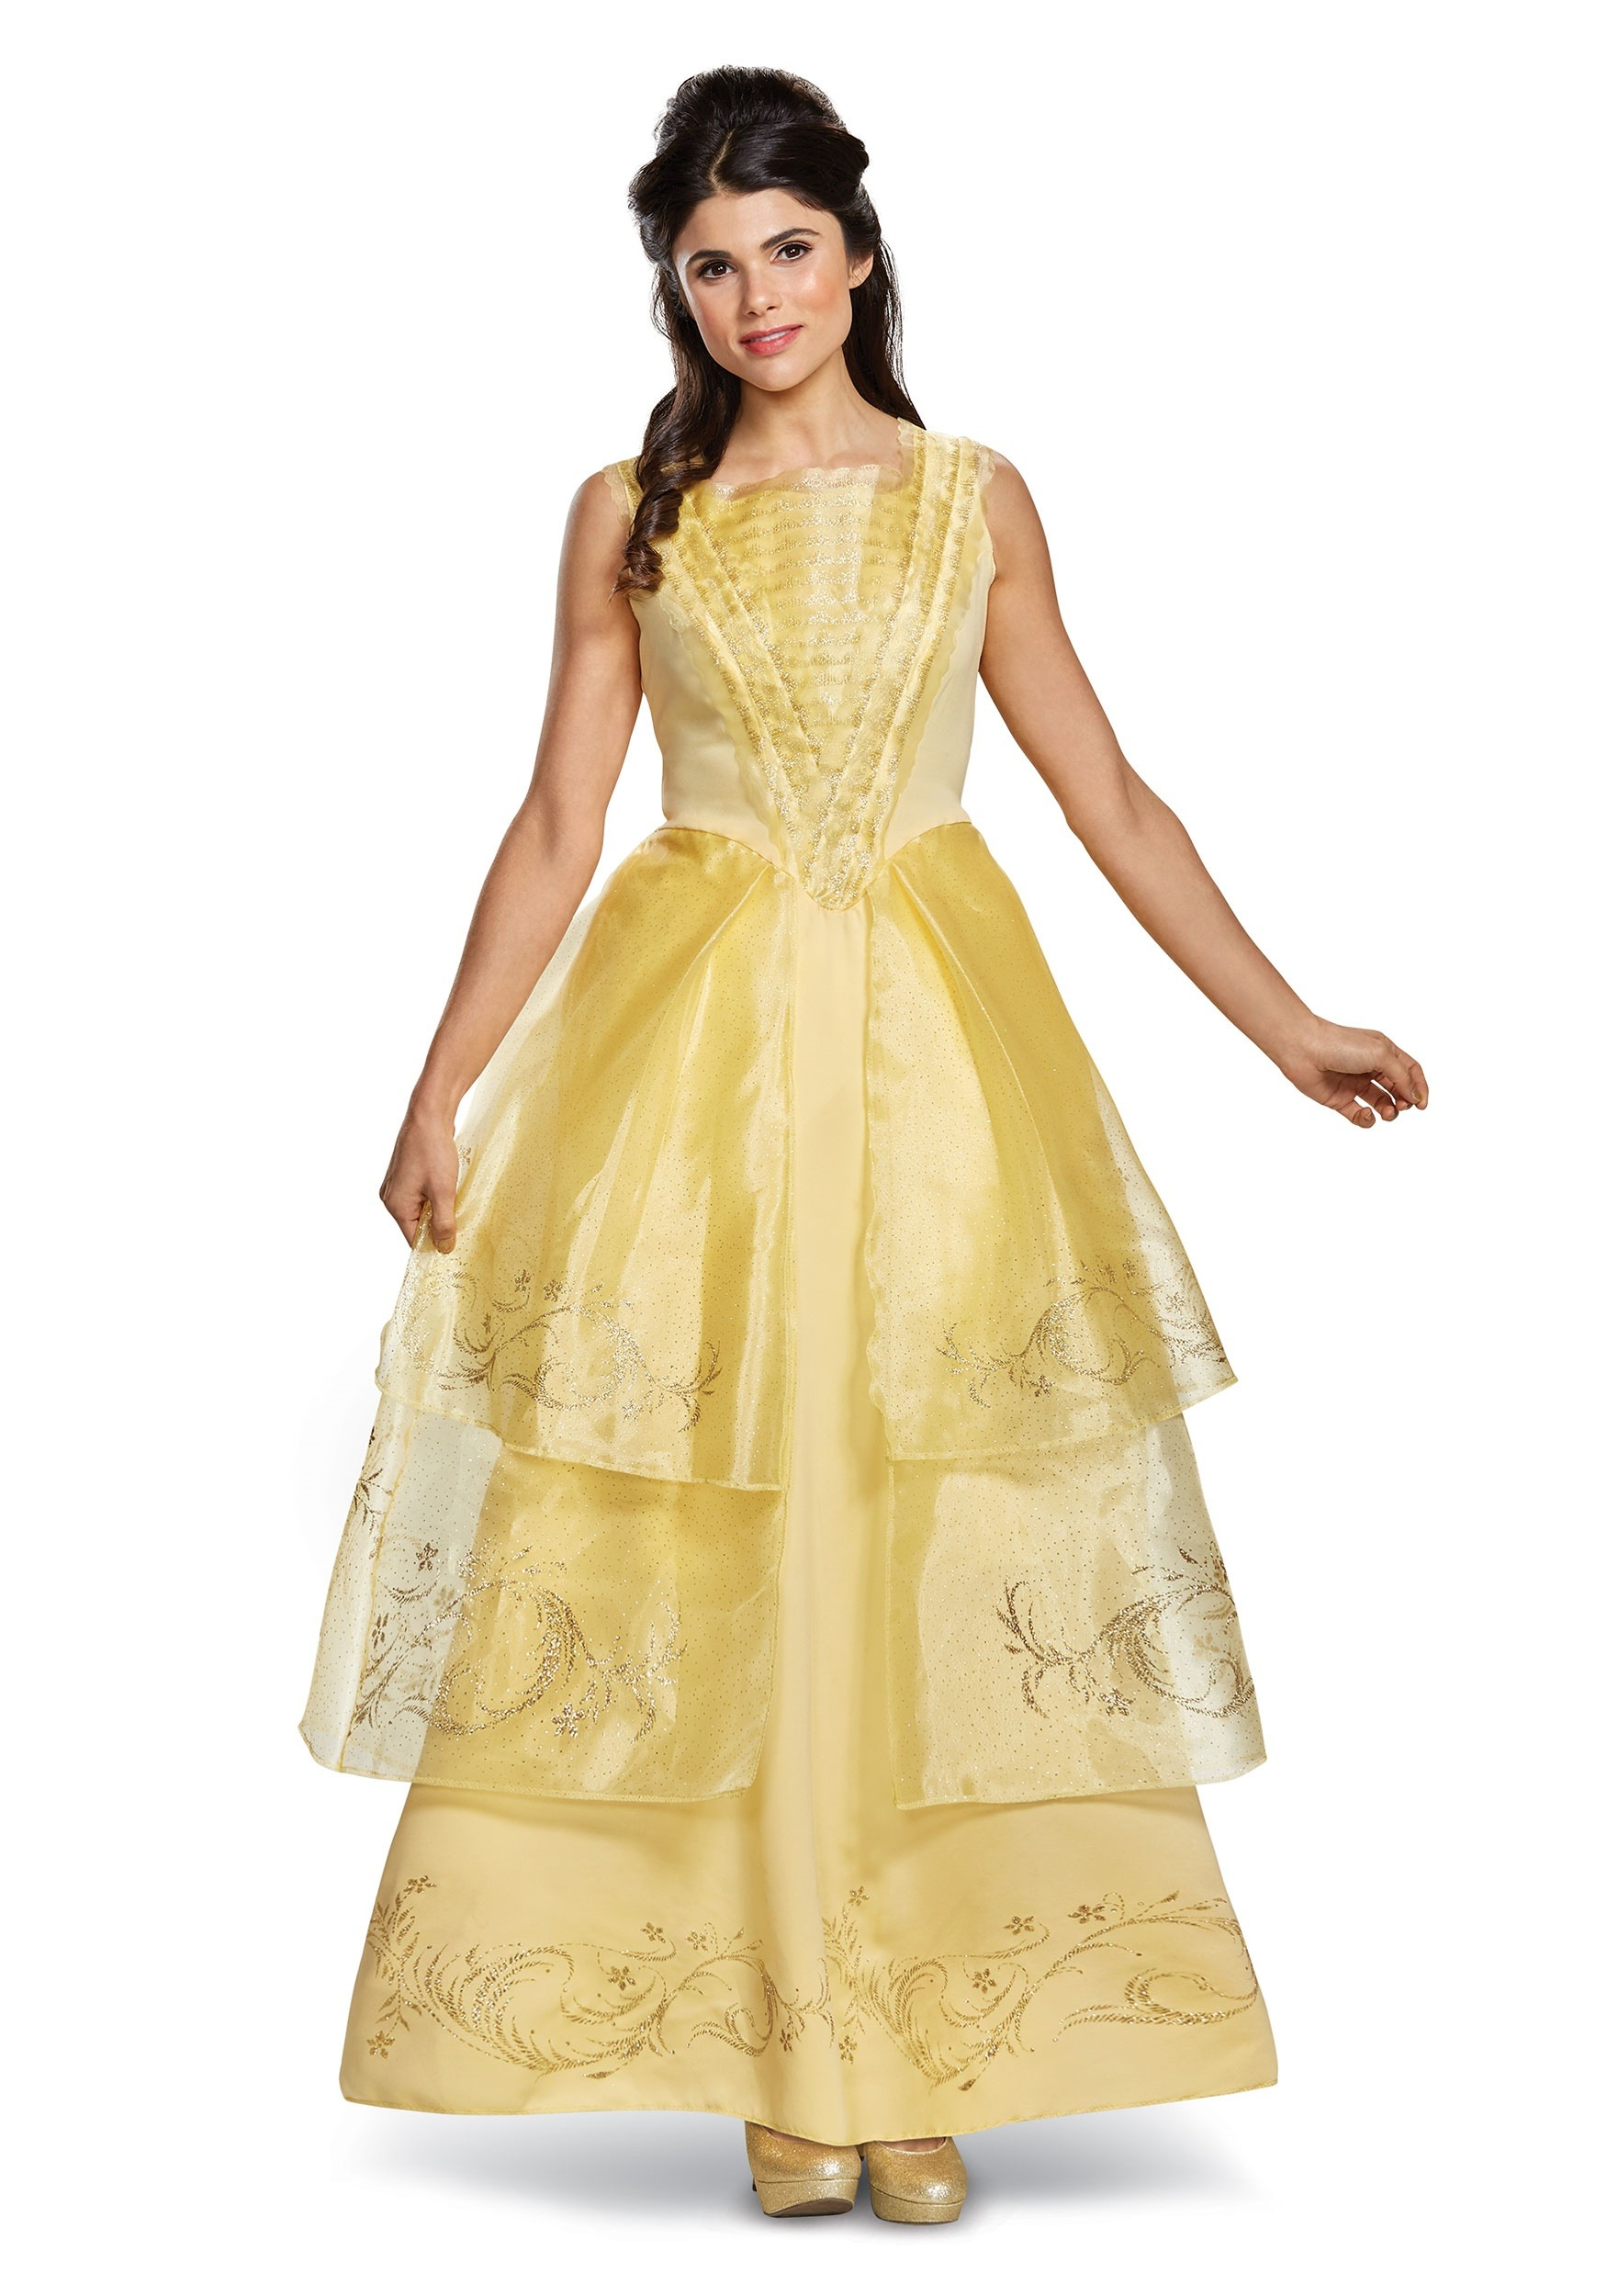 Belle Ball Gown Deluxe Women's Costume Beauty and the Beast live action movie design yellow gold color dress for adult women